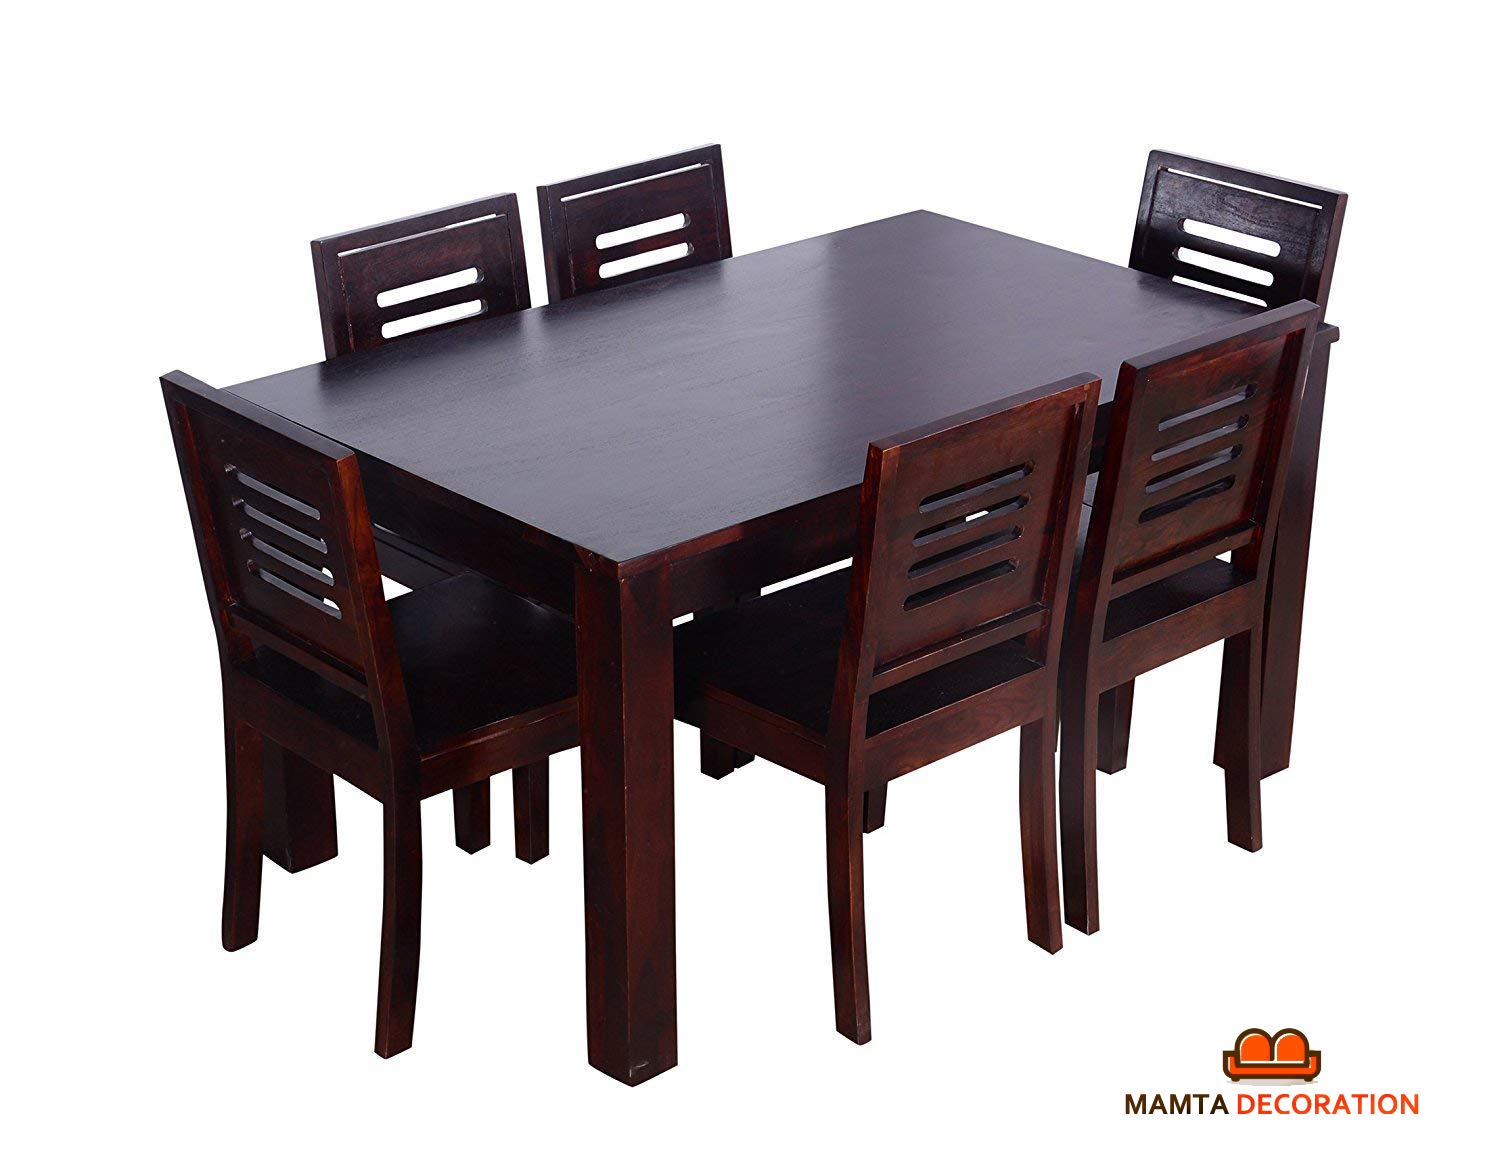 Mamta decoration sheesham wood wooden dining table with 6 chairs home and living room mahogany finish brown amazon in electronics